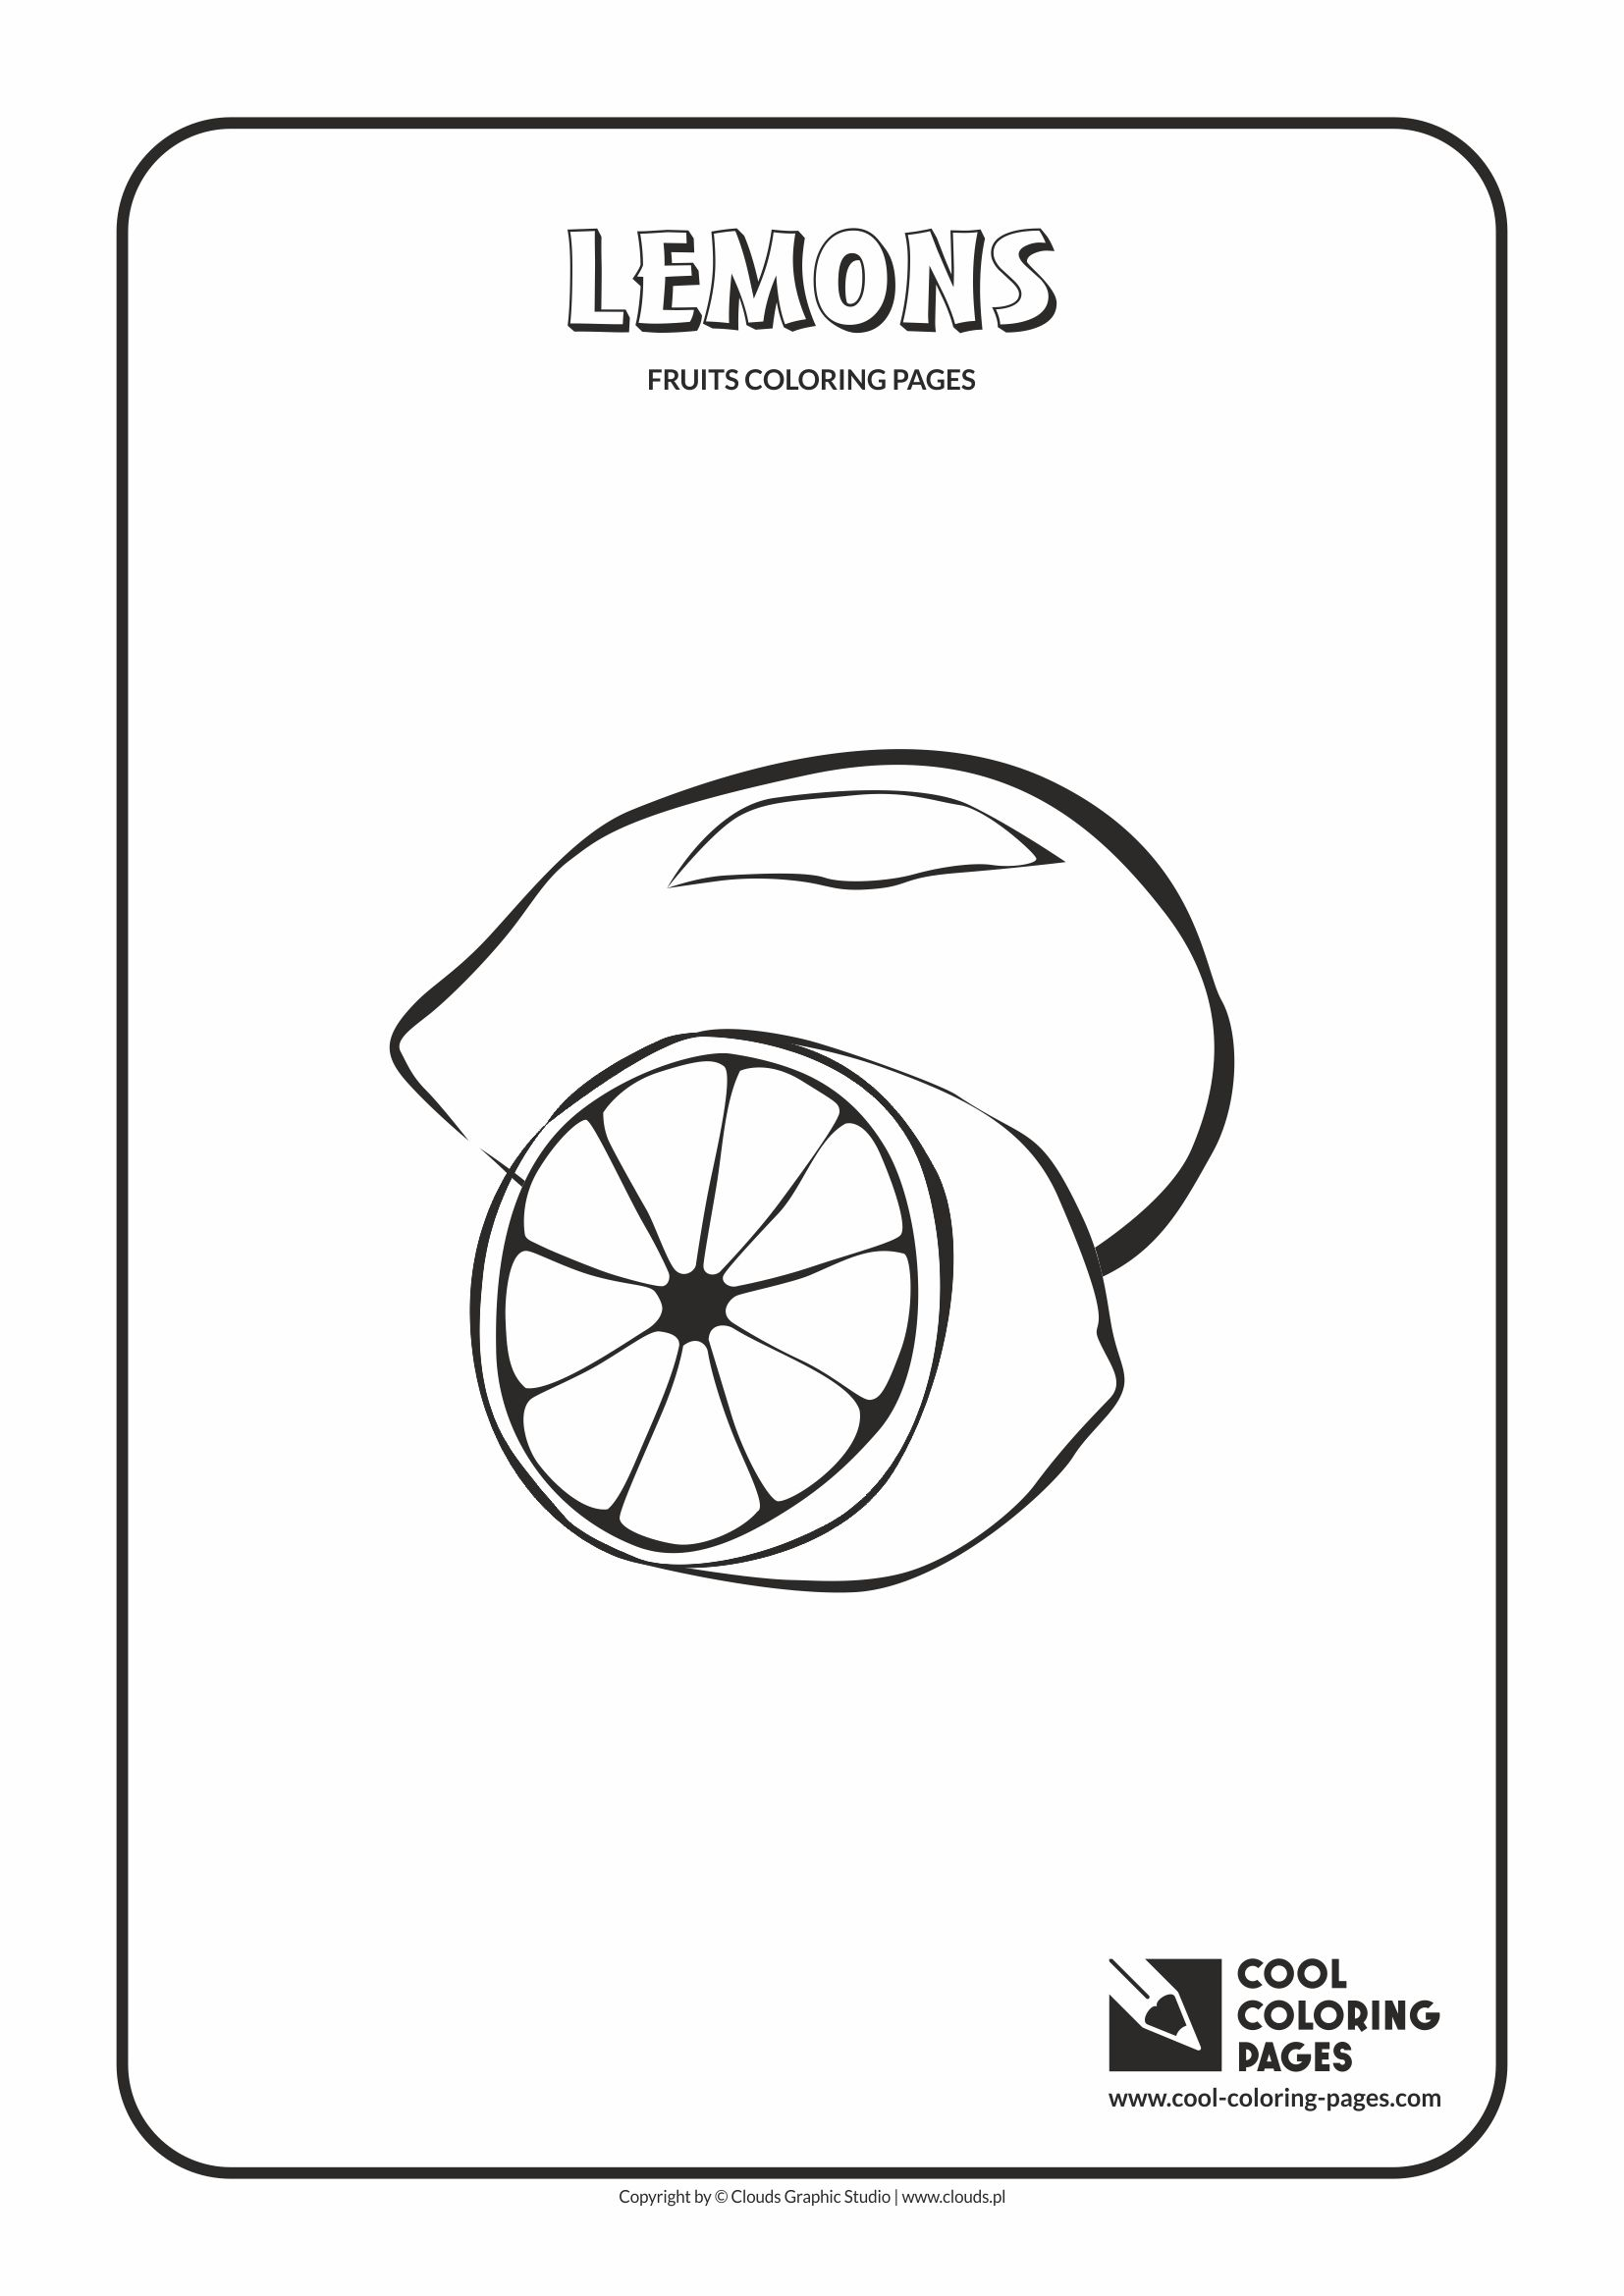 Cool Coloring Pages - Plants / Lemons / Coloring page with lemons